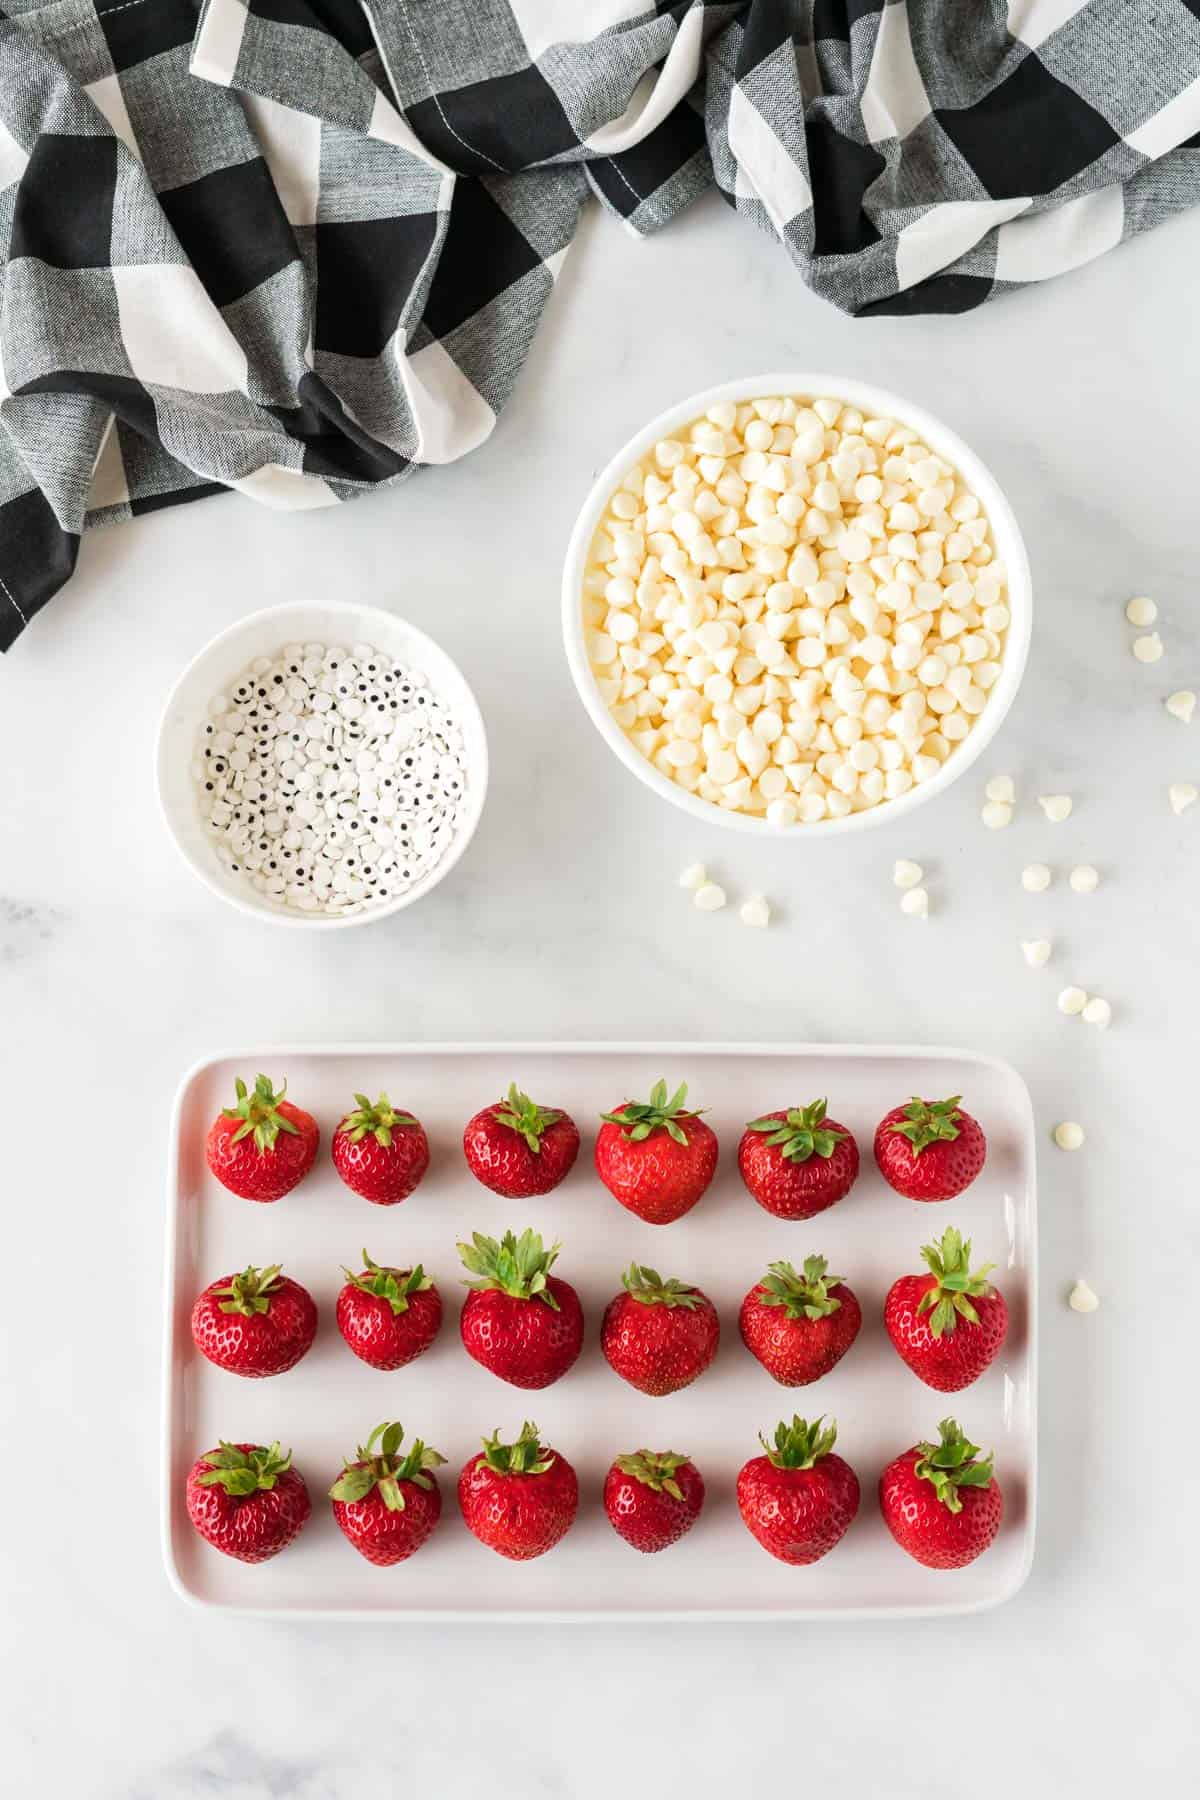 ingredients to make strawberry ghosts